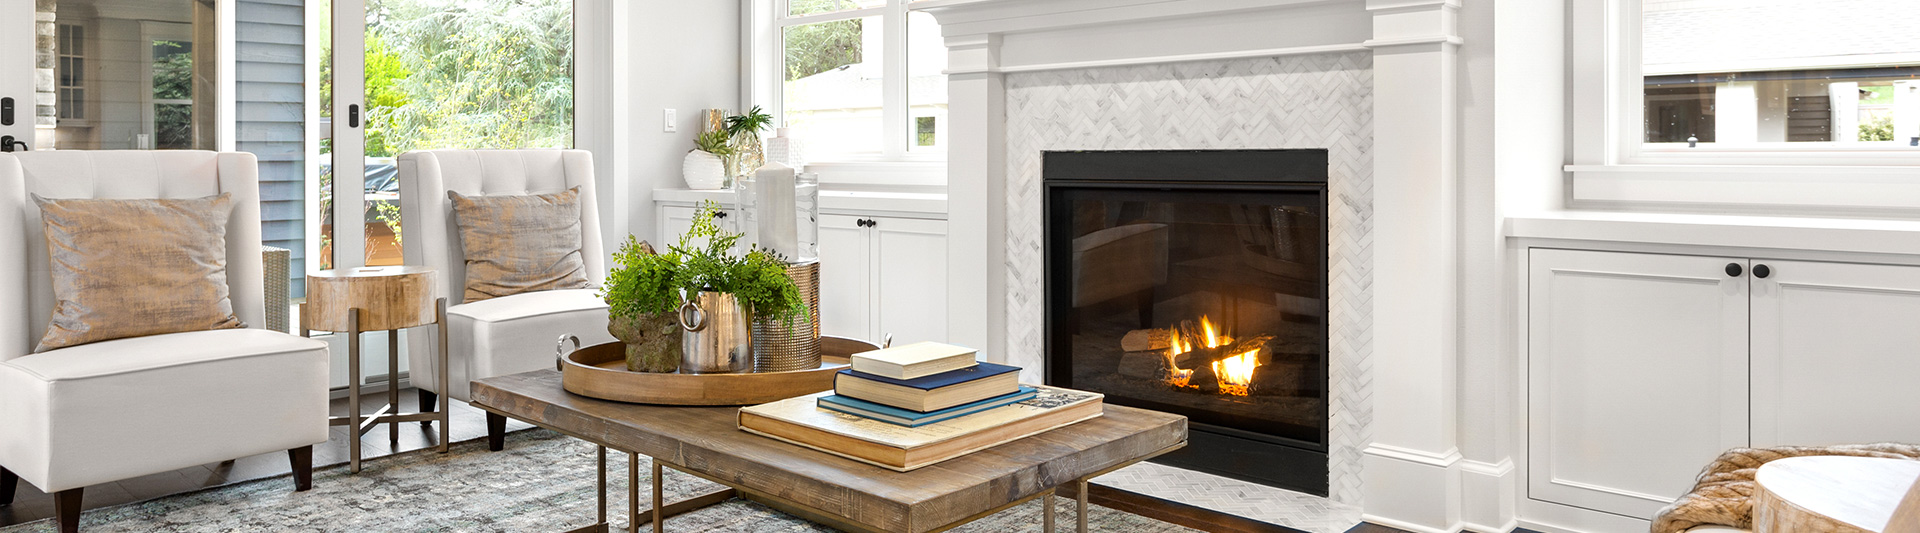 Fireplace in living room with fireplace insert